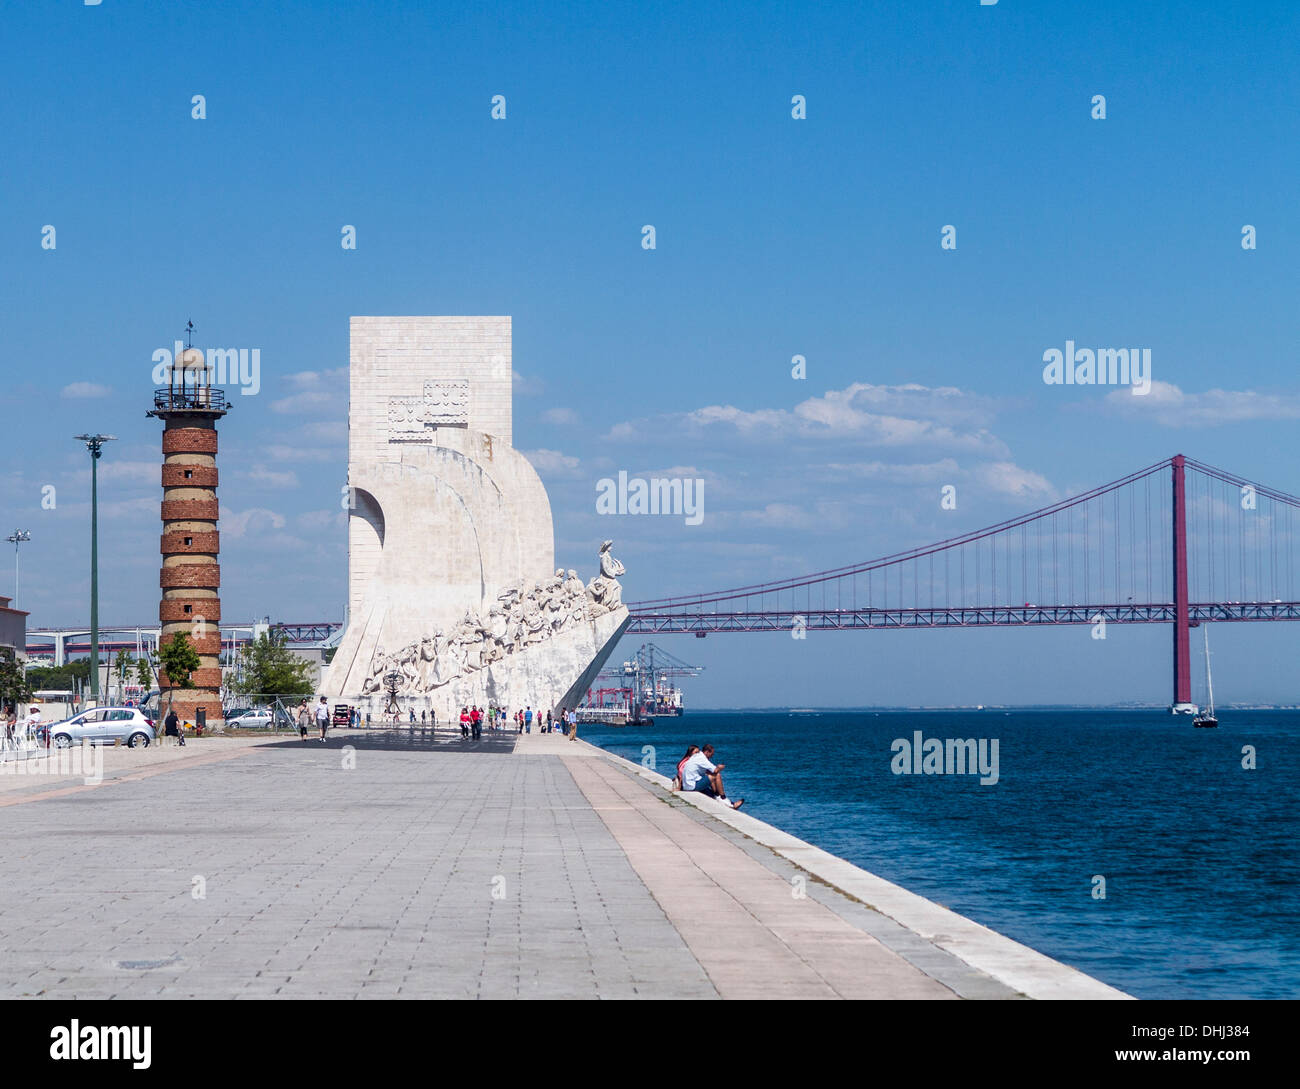 Monument to the Discoveries / Padrao dos Descobrimentos statue and memorial in Belem, Lisbon, Portugal - Stock Image